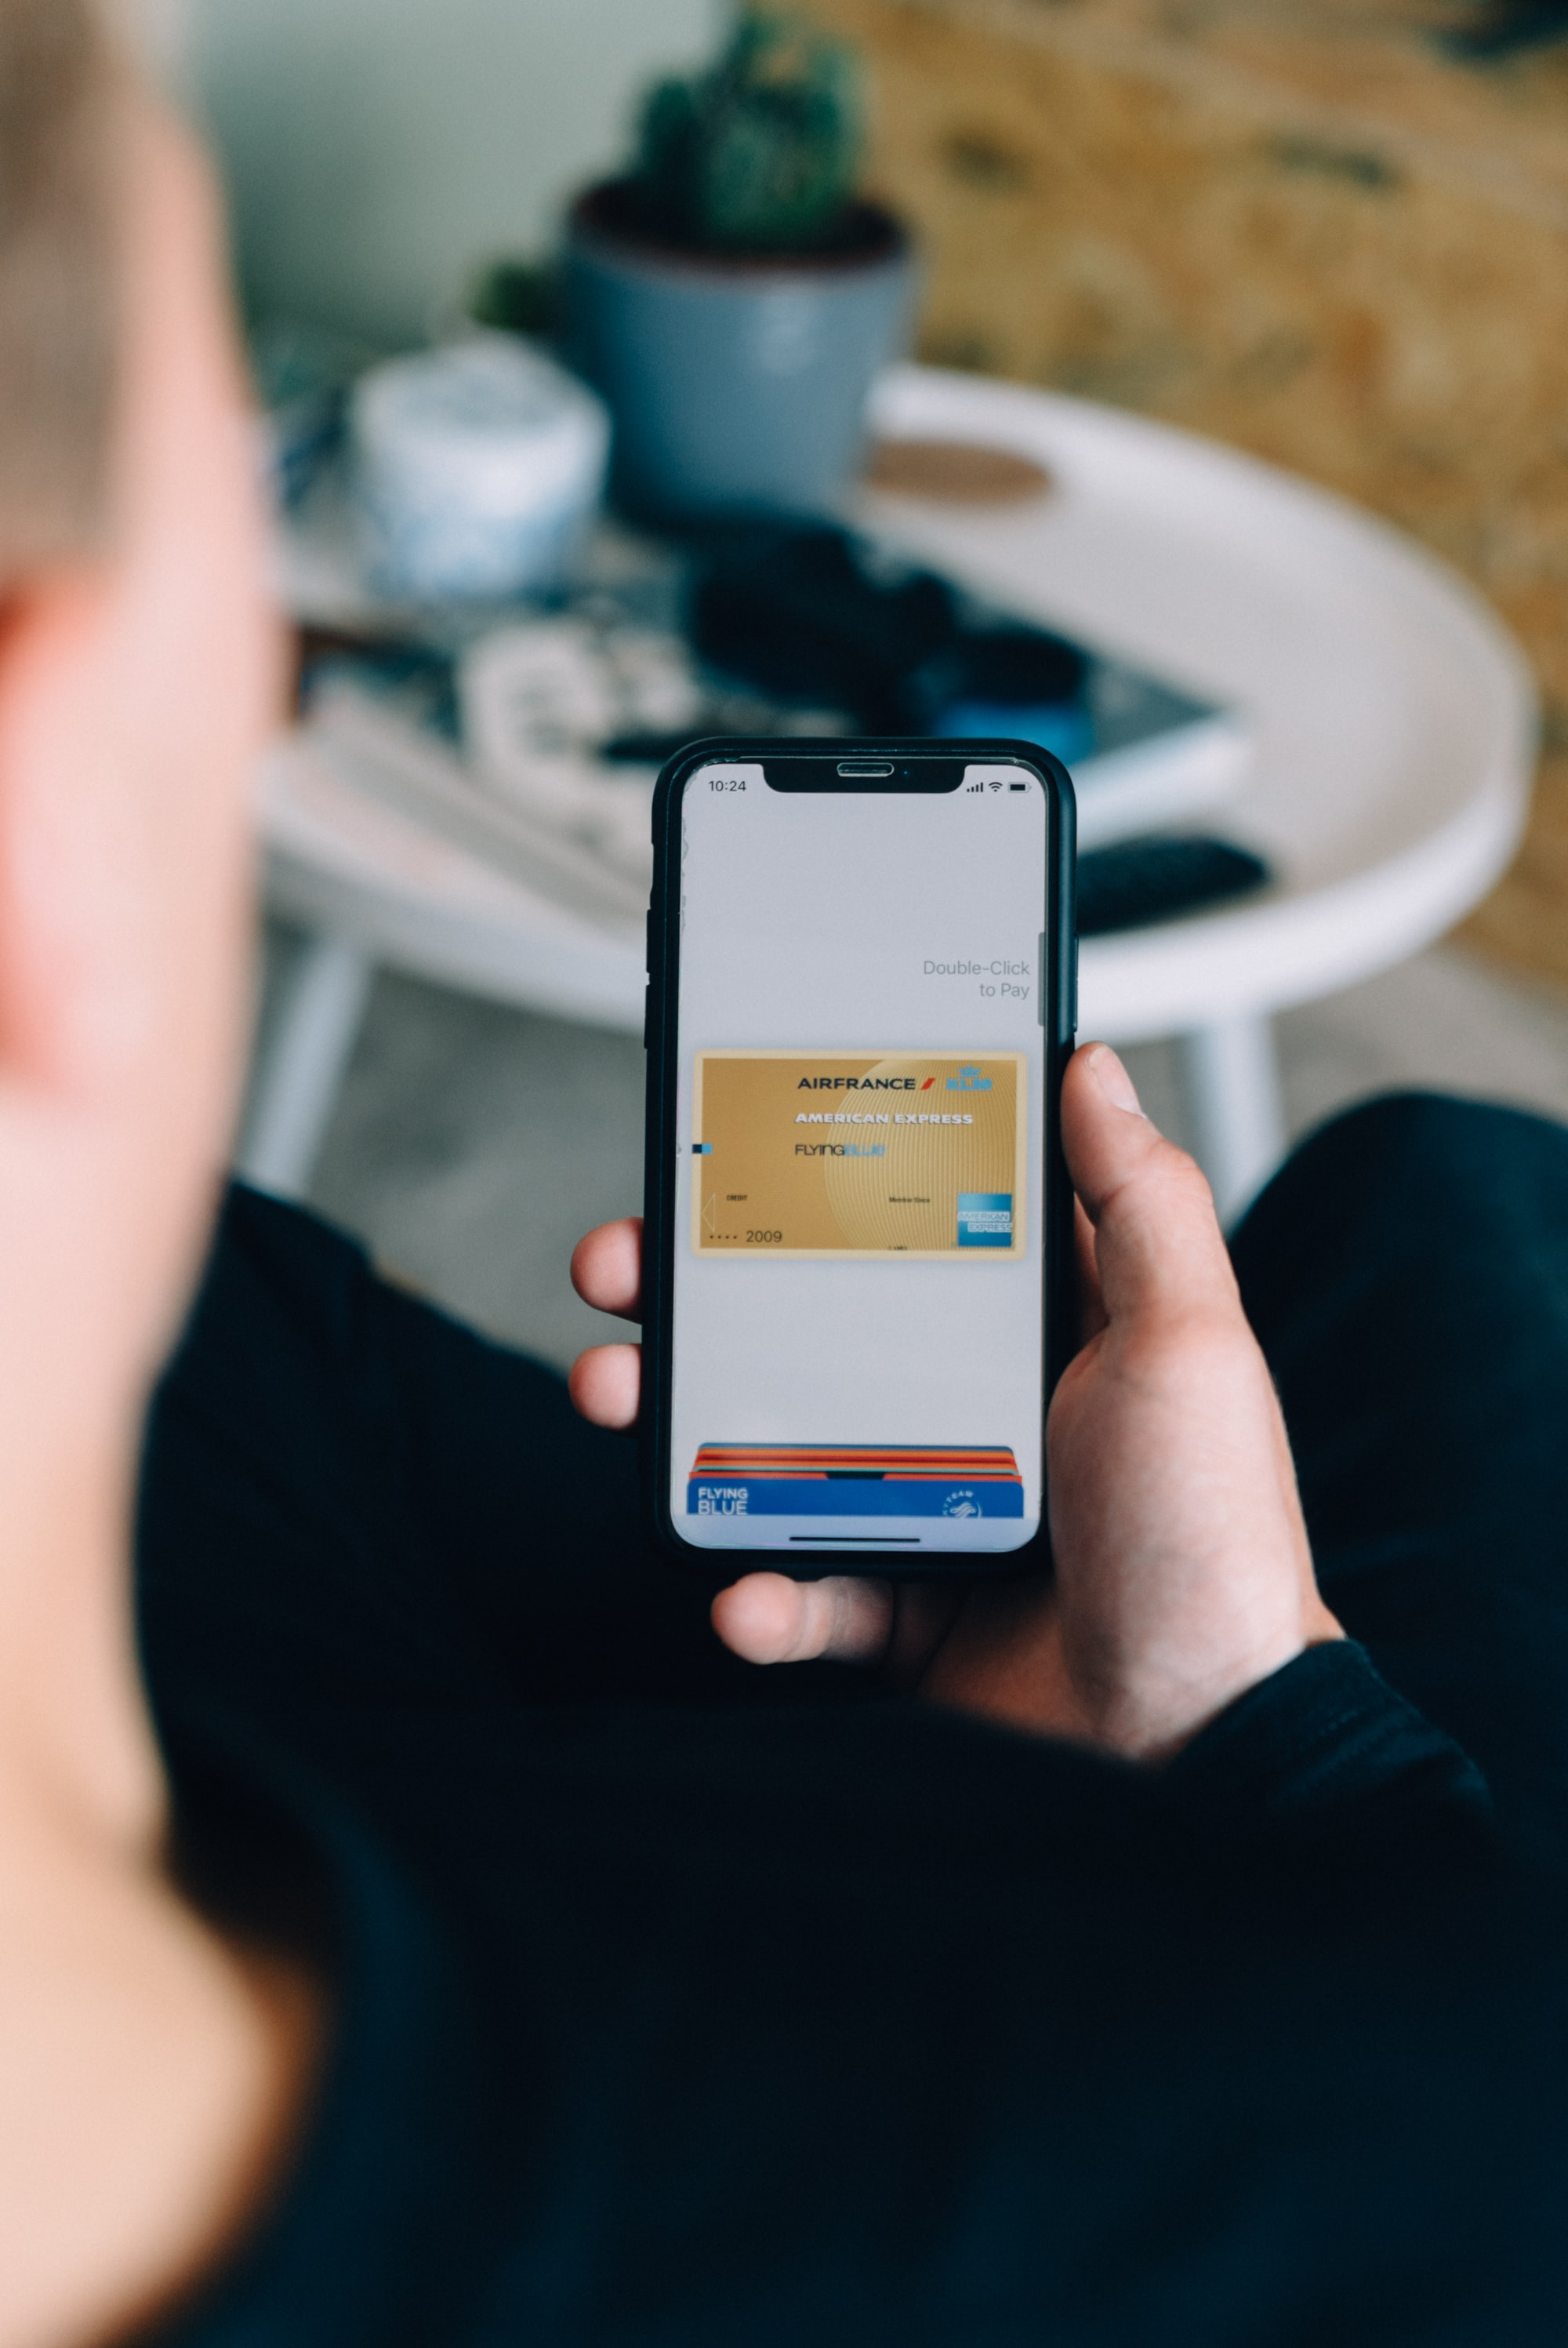 Using my American Express creditcard with Apple Pay